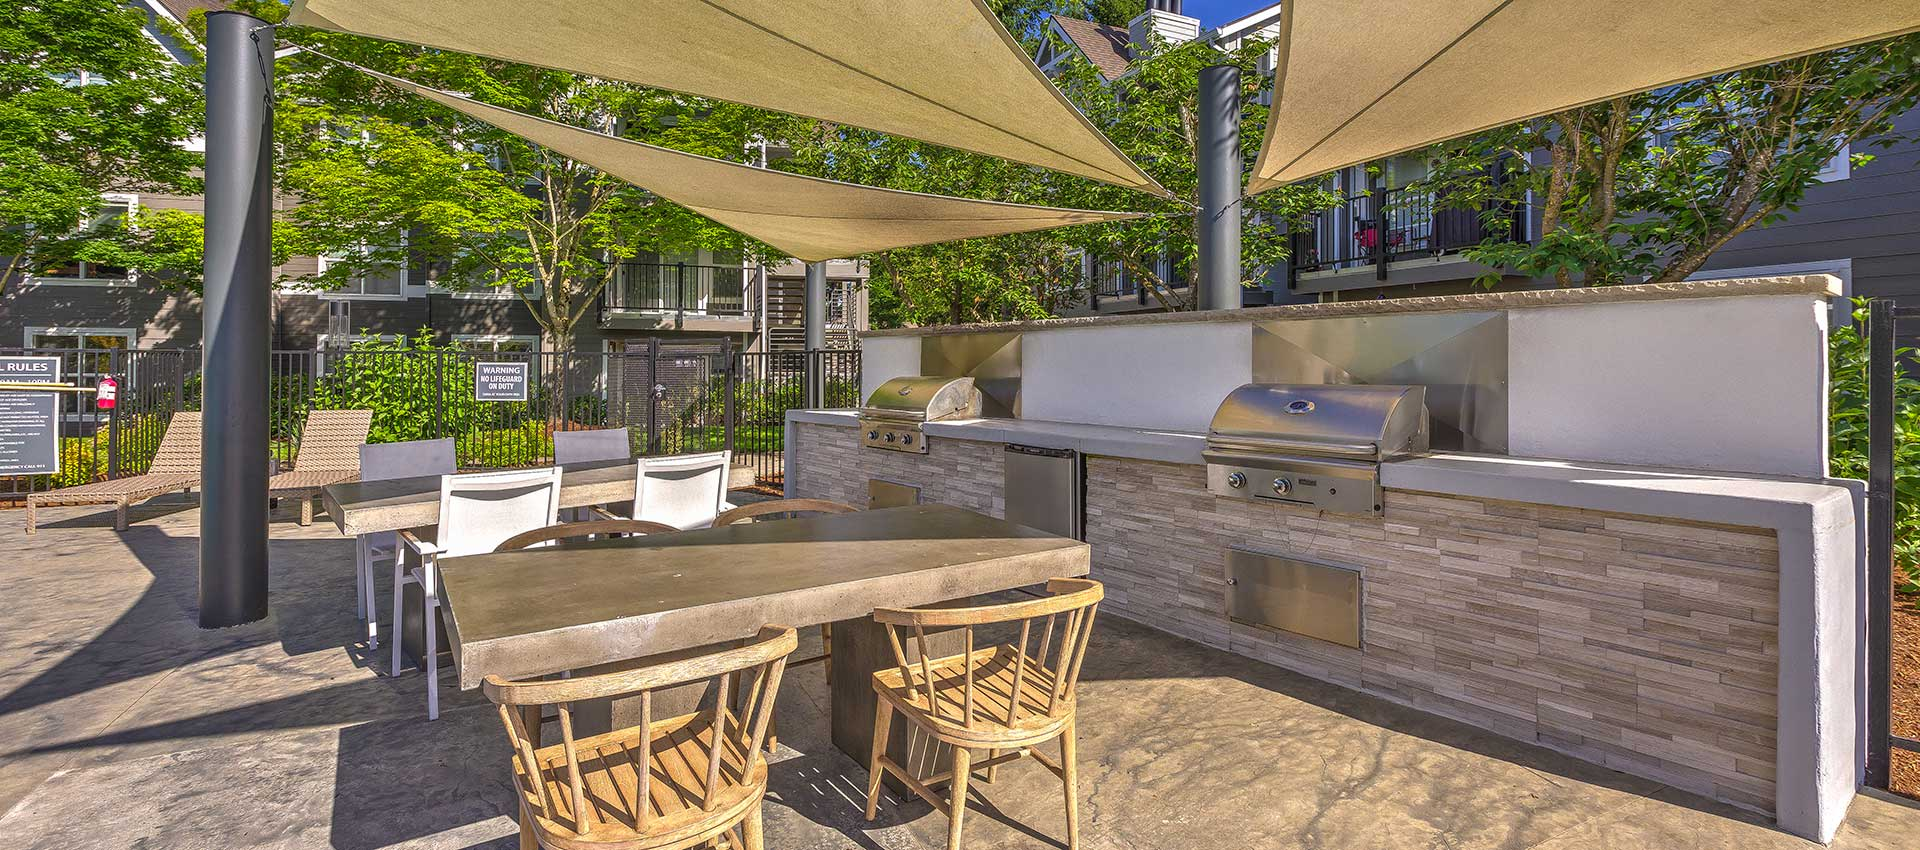 BBQ cabana at Centro Apartment Homes